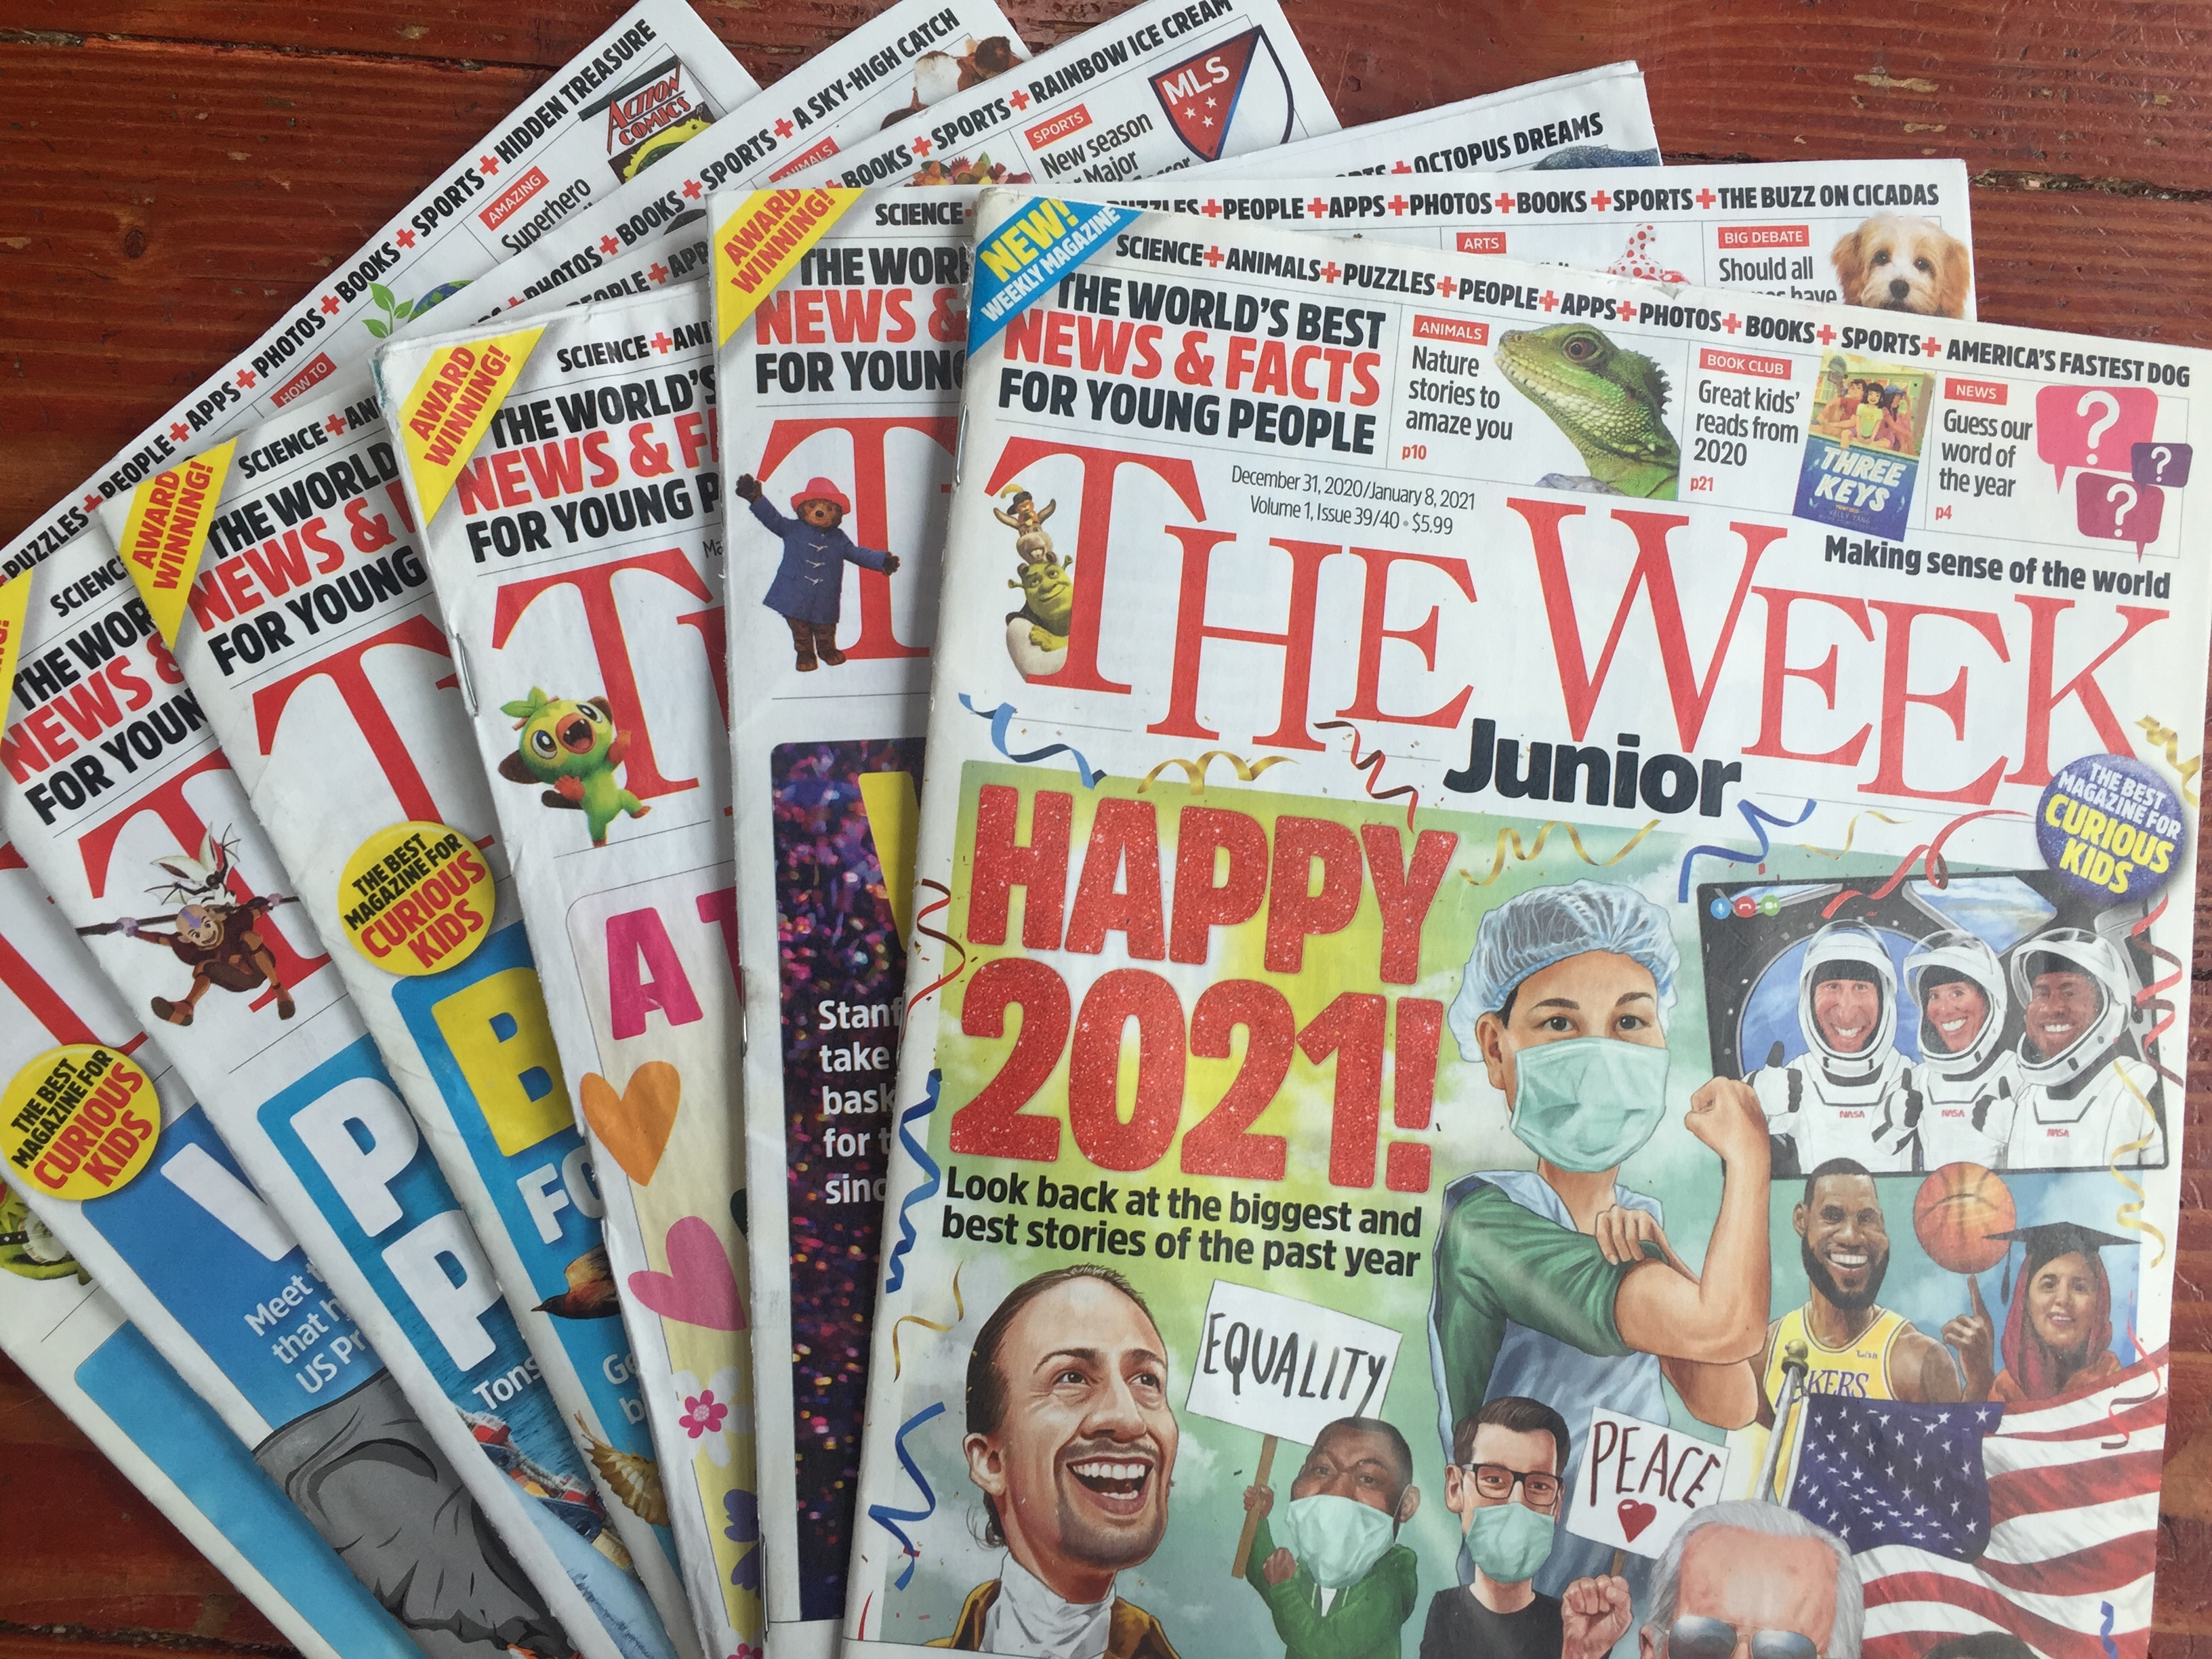 The Week Junior magazine for kids multiple issues from 2021 fanned out on floor